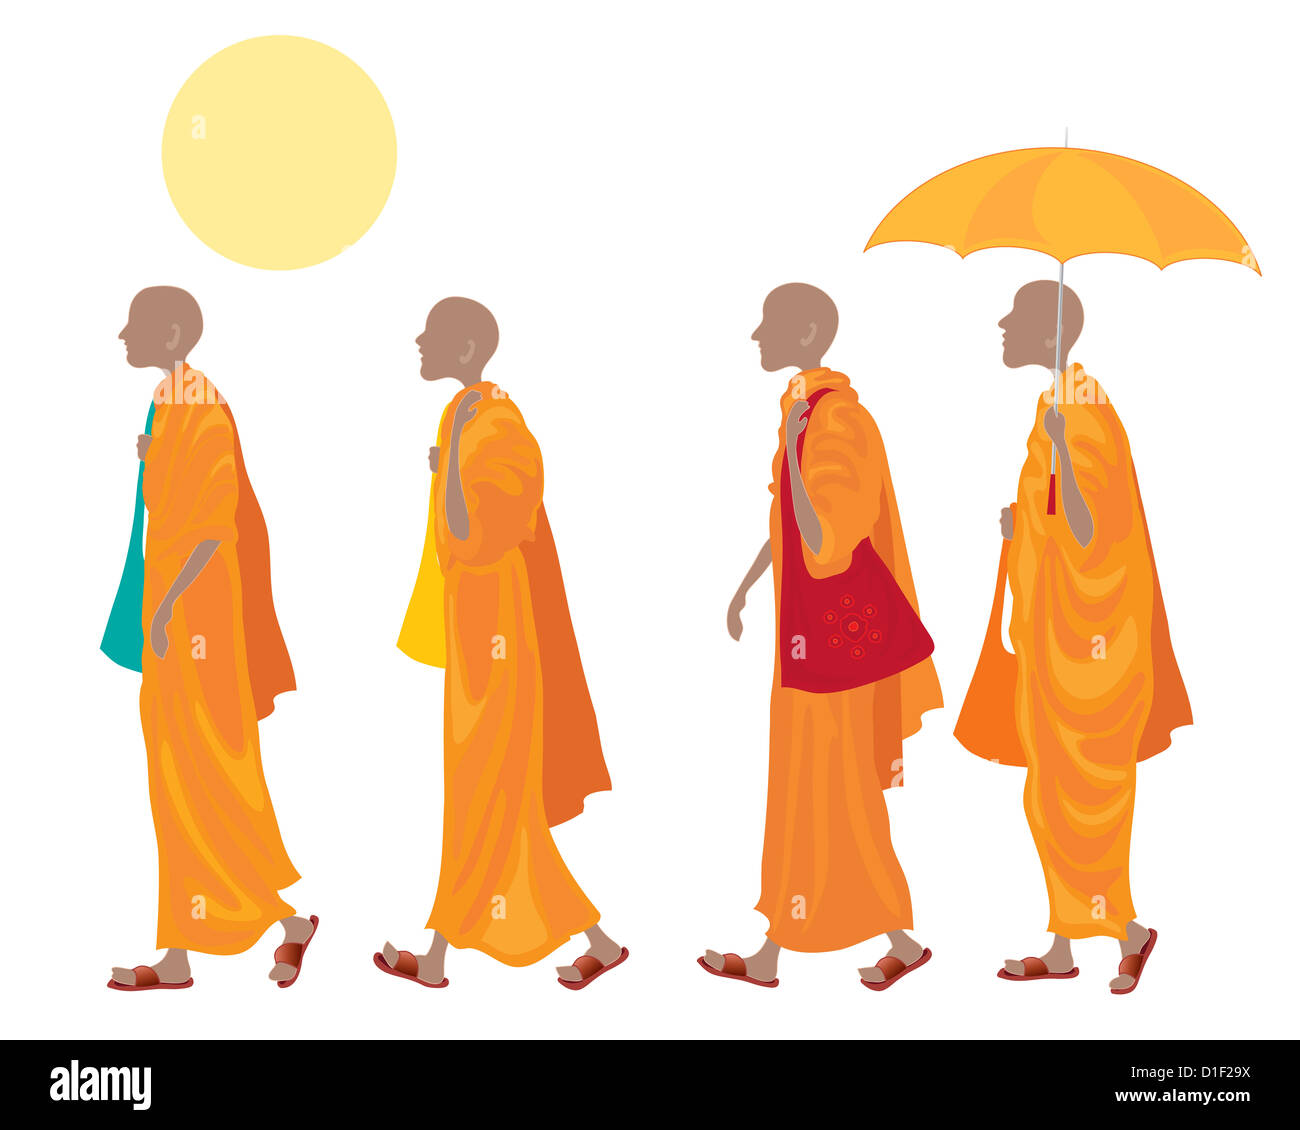 an illustration of a four Buddhist monks walking in line with orange robes carrying cloth bags and wearing brown - Stock Image